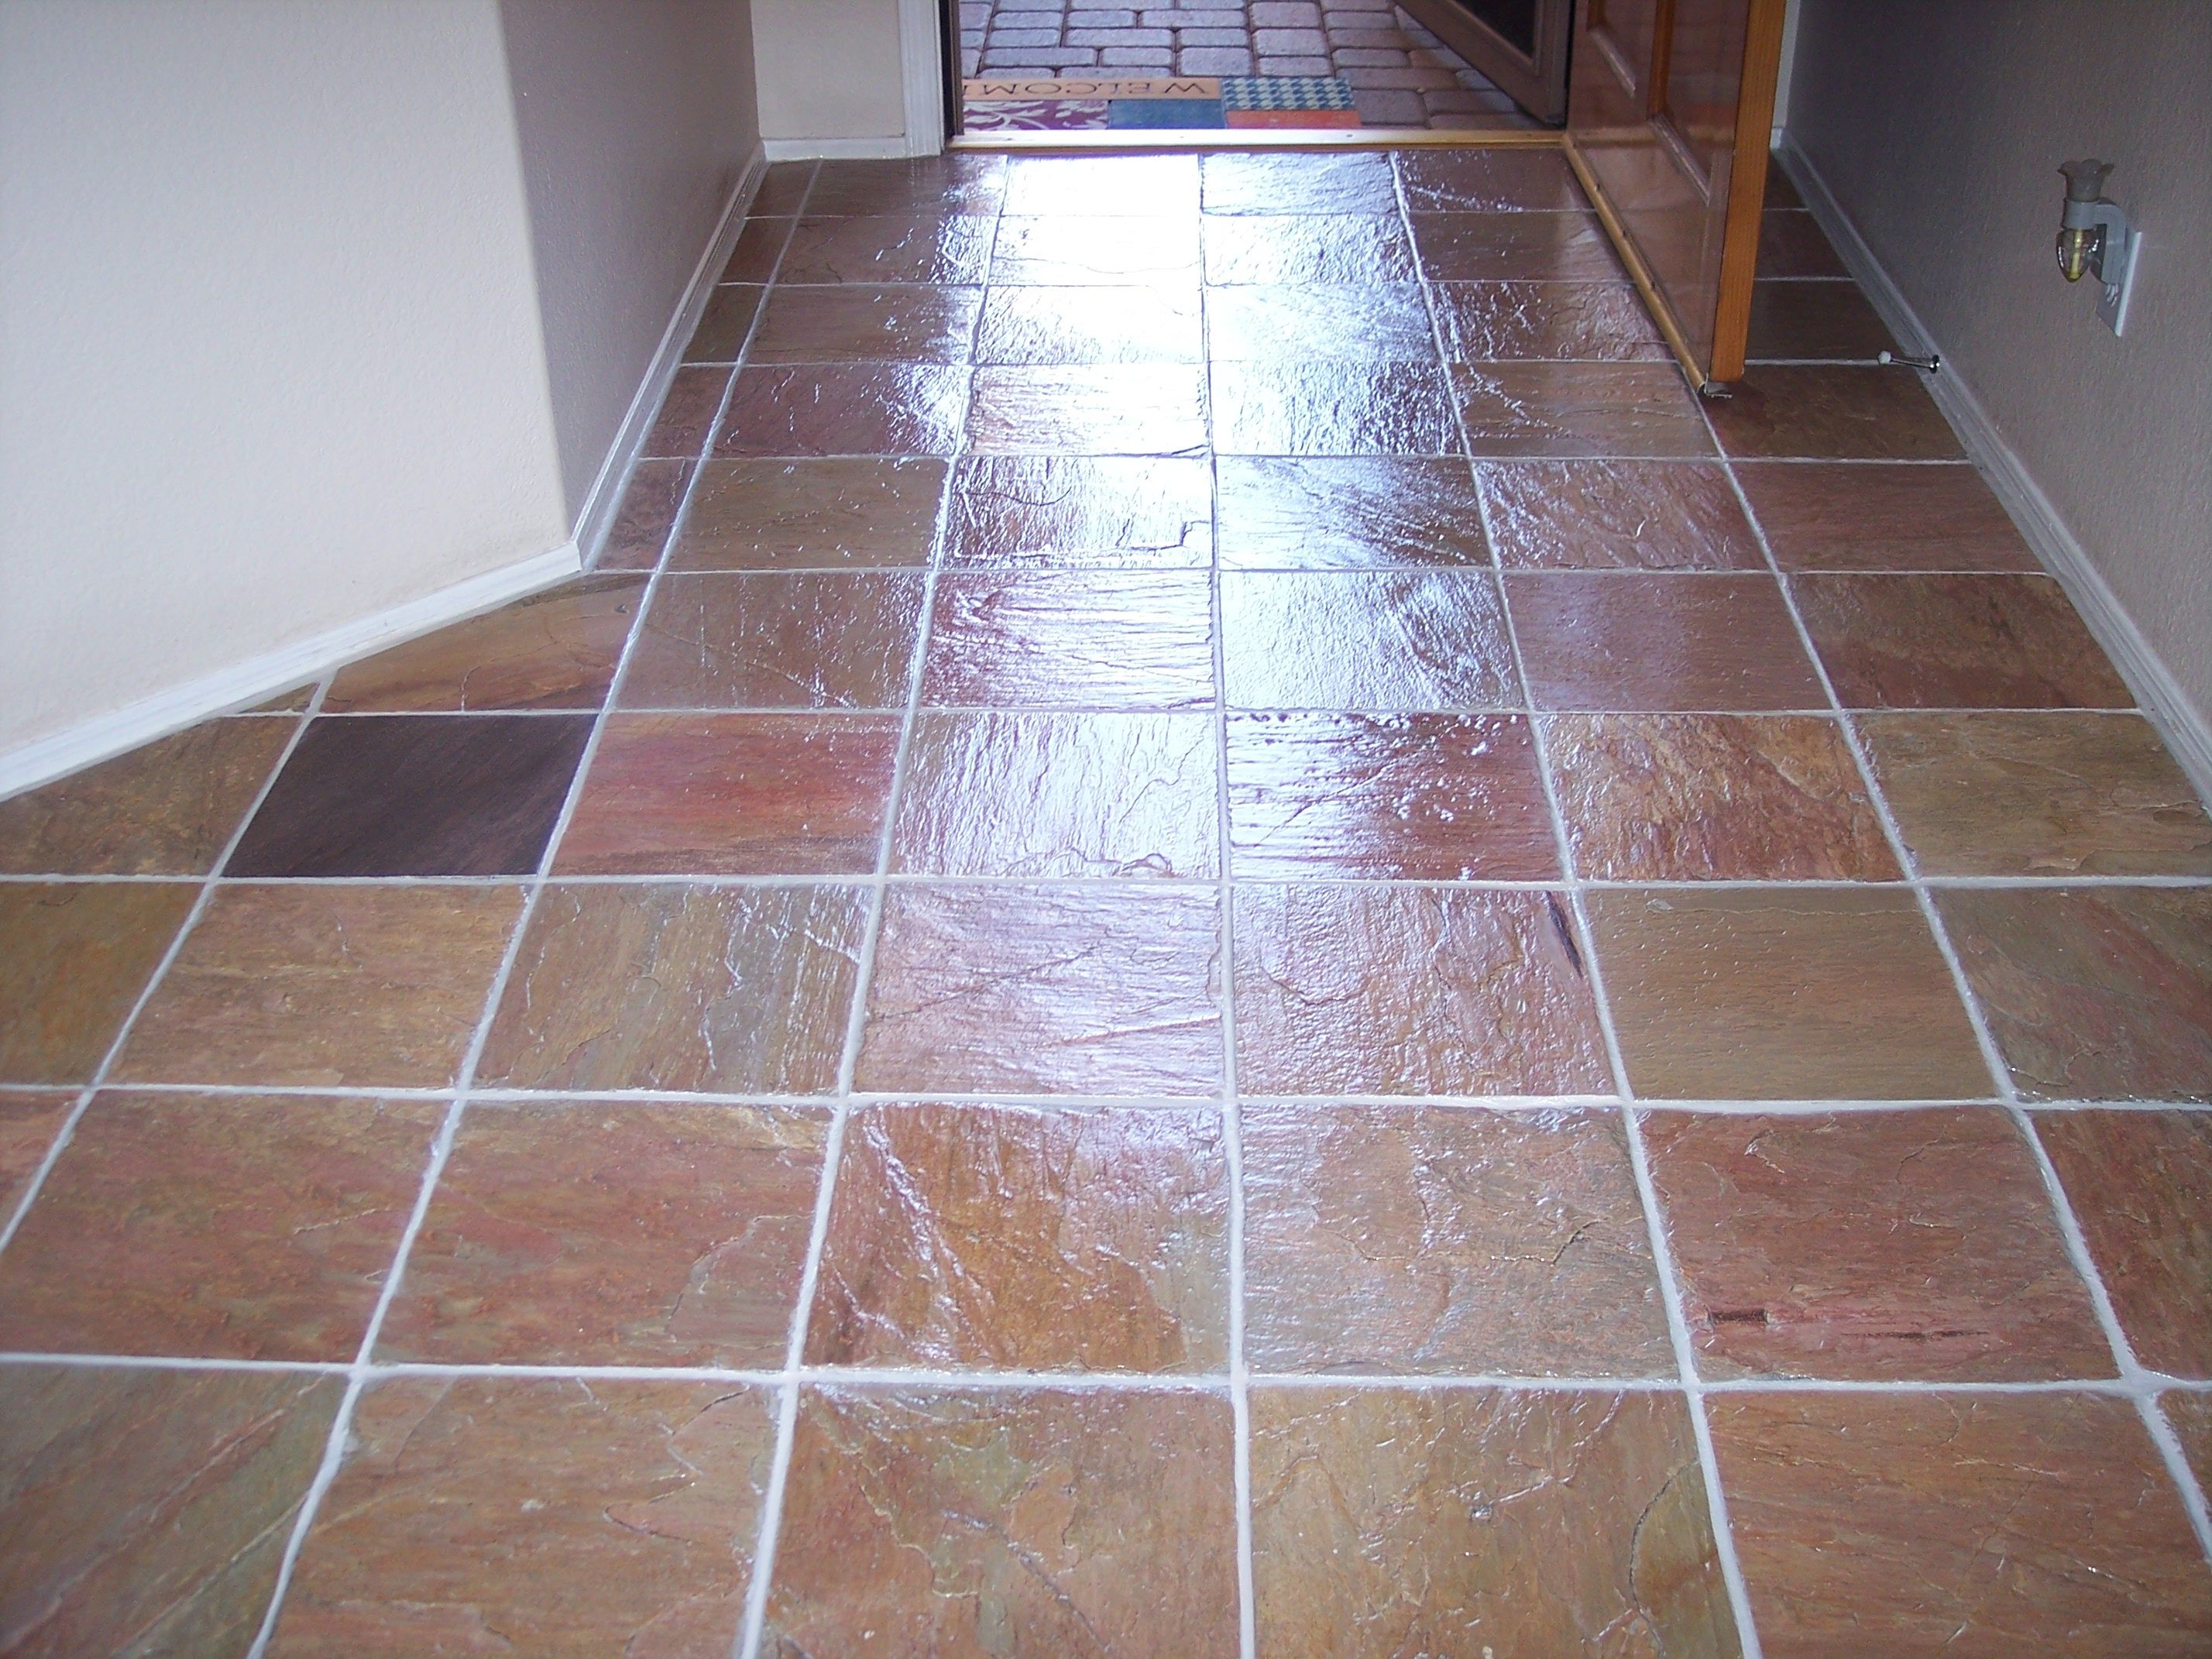 Washing ceramic tile floors with vinegar httpnextsoft21 tile flooring washing ceramic dailygadgetfo Choice Image